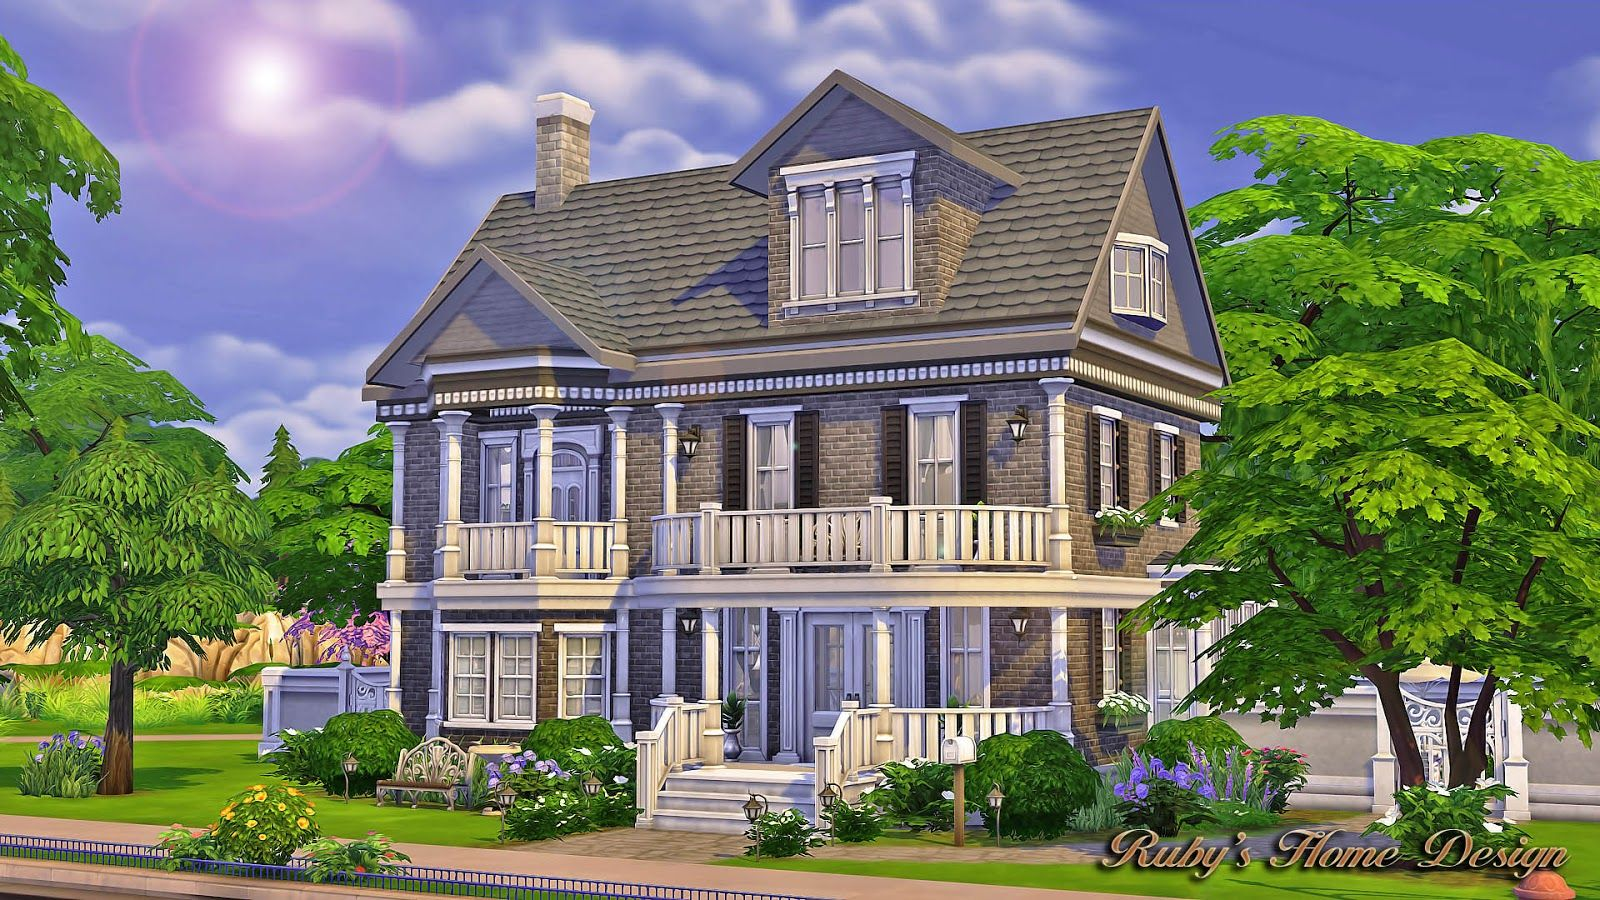 Sims4 The Chocolate House No Cc Rubys Home Design - sims 4 house design